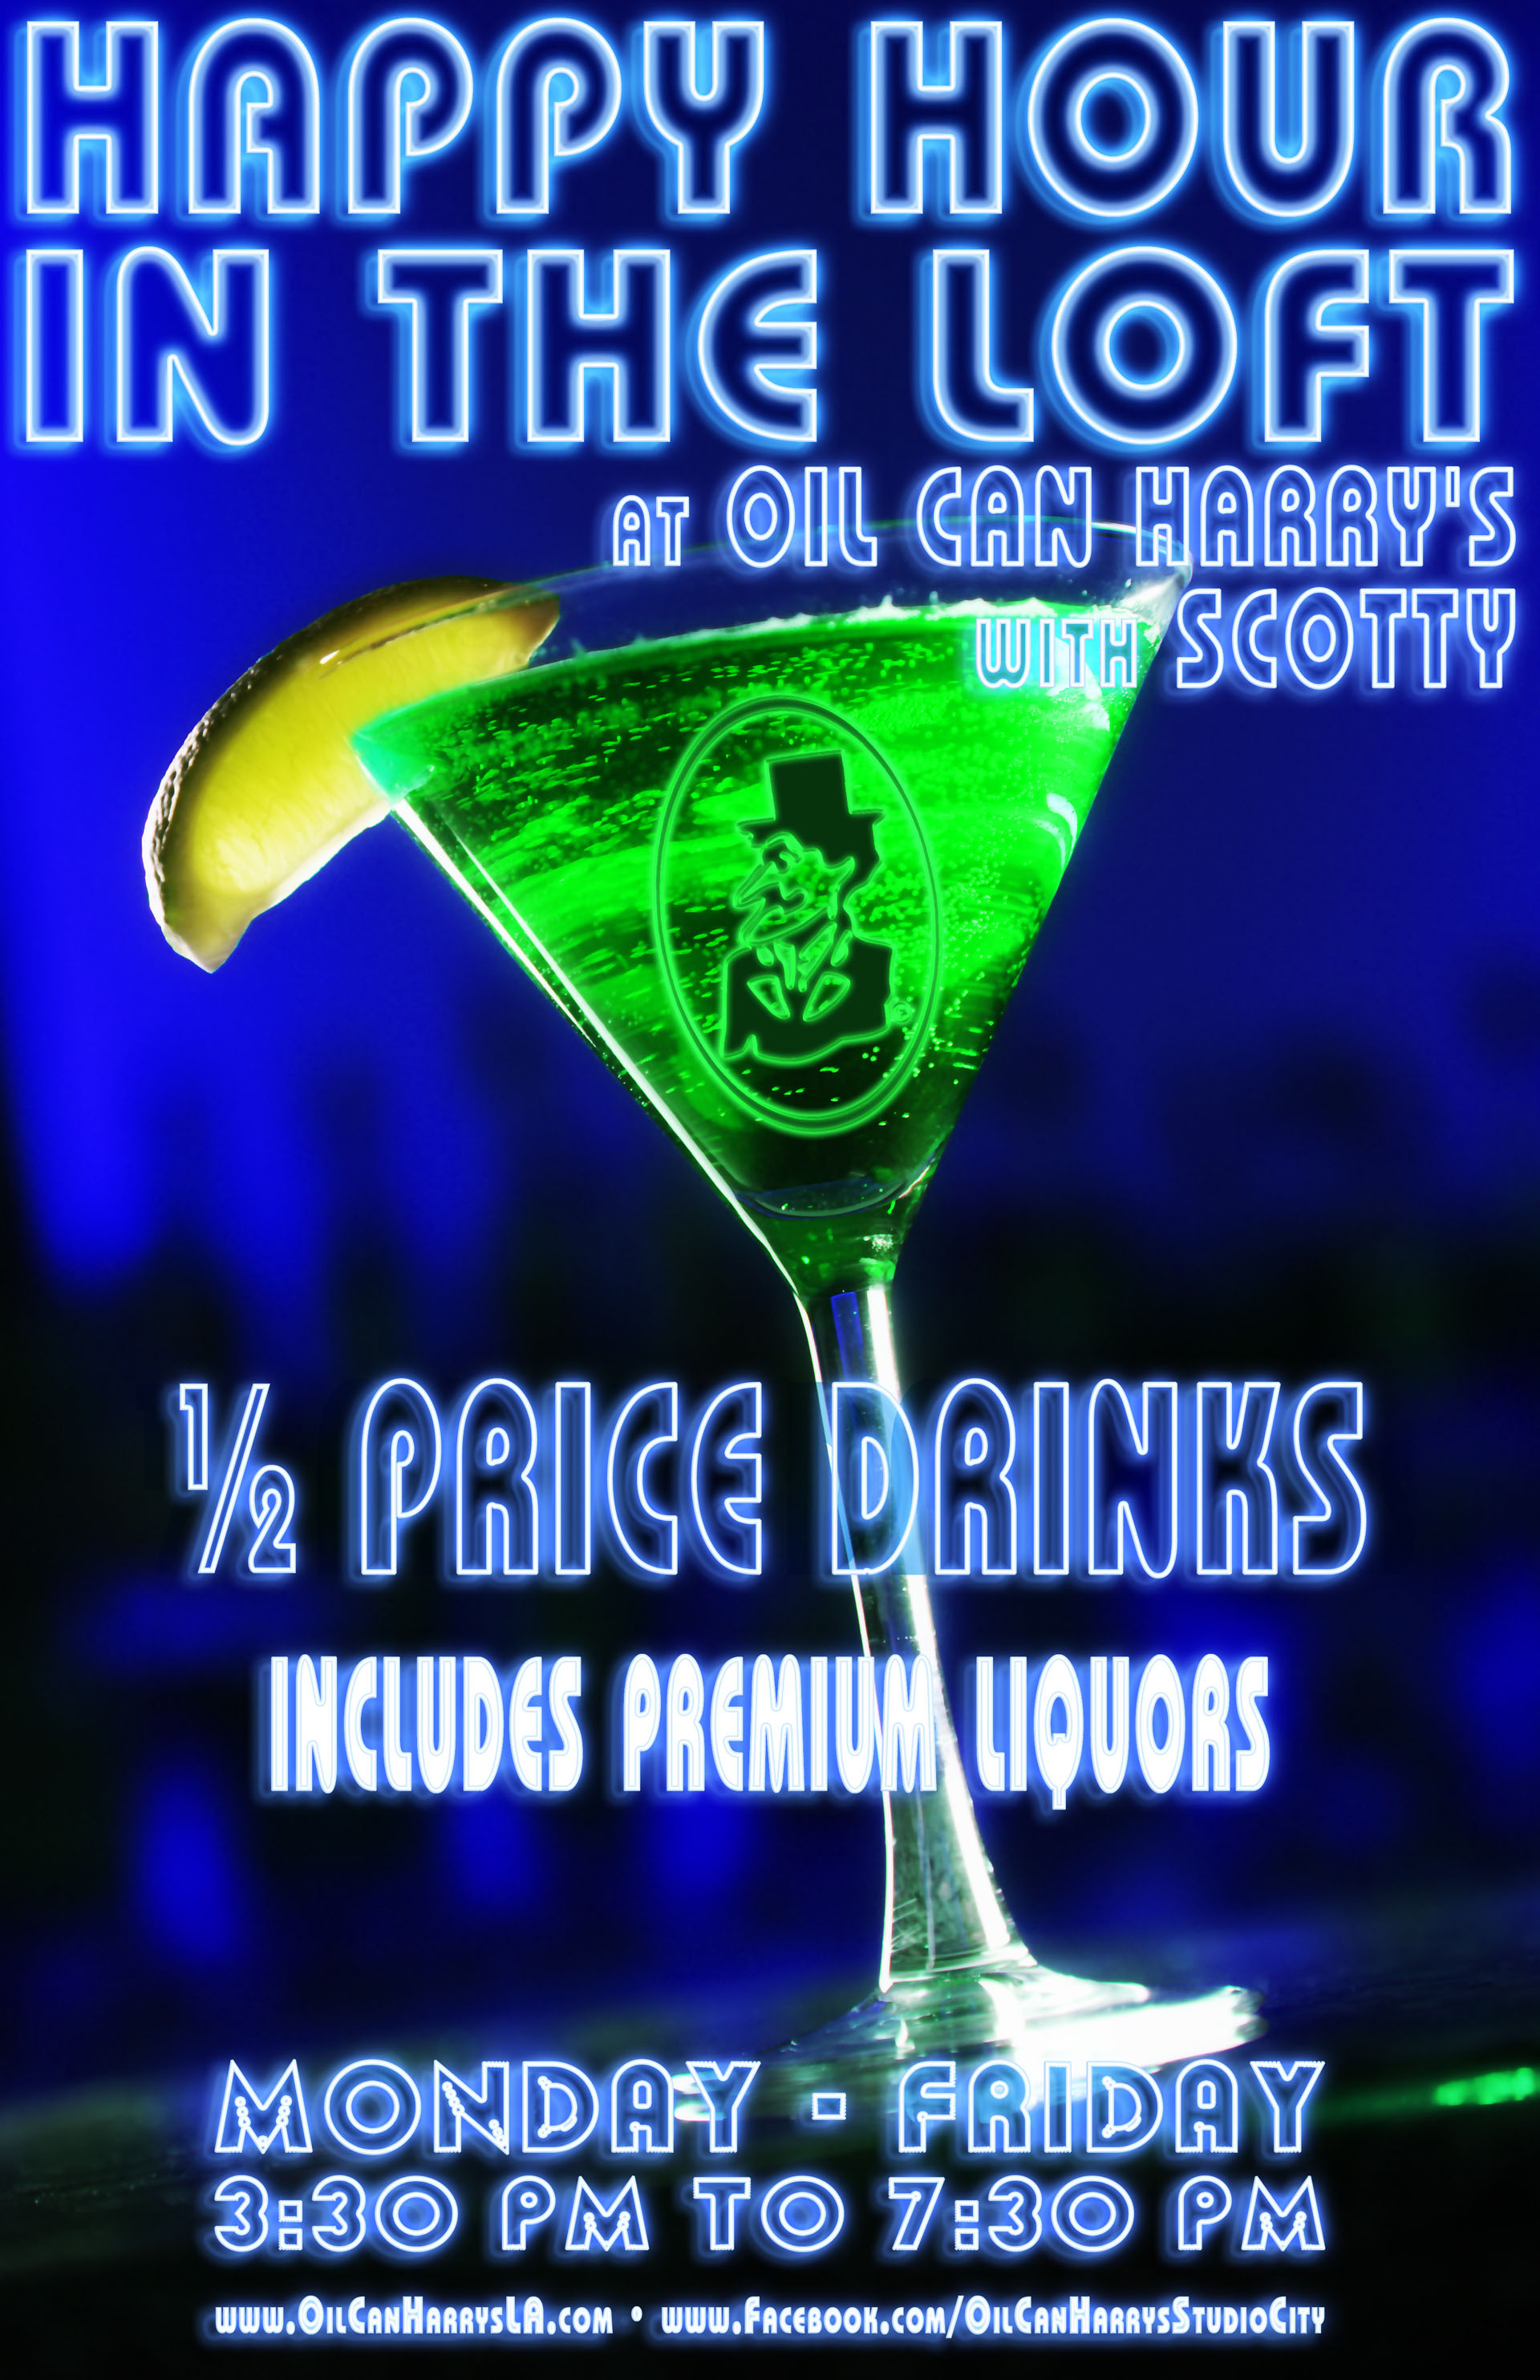 Happy Hour in The Loft with Scotty at Oil Can Harry's Featuring 1/2 Price Drinks, Including Premium Liquors: Monday through Friday, 3:30 - 7:30 PM!